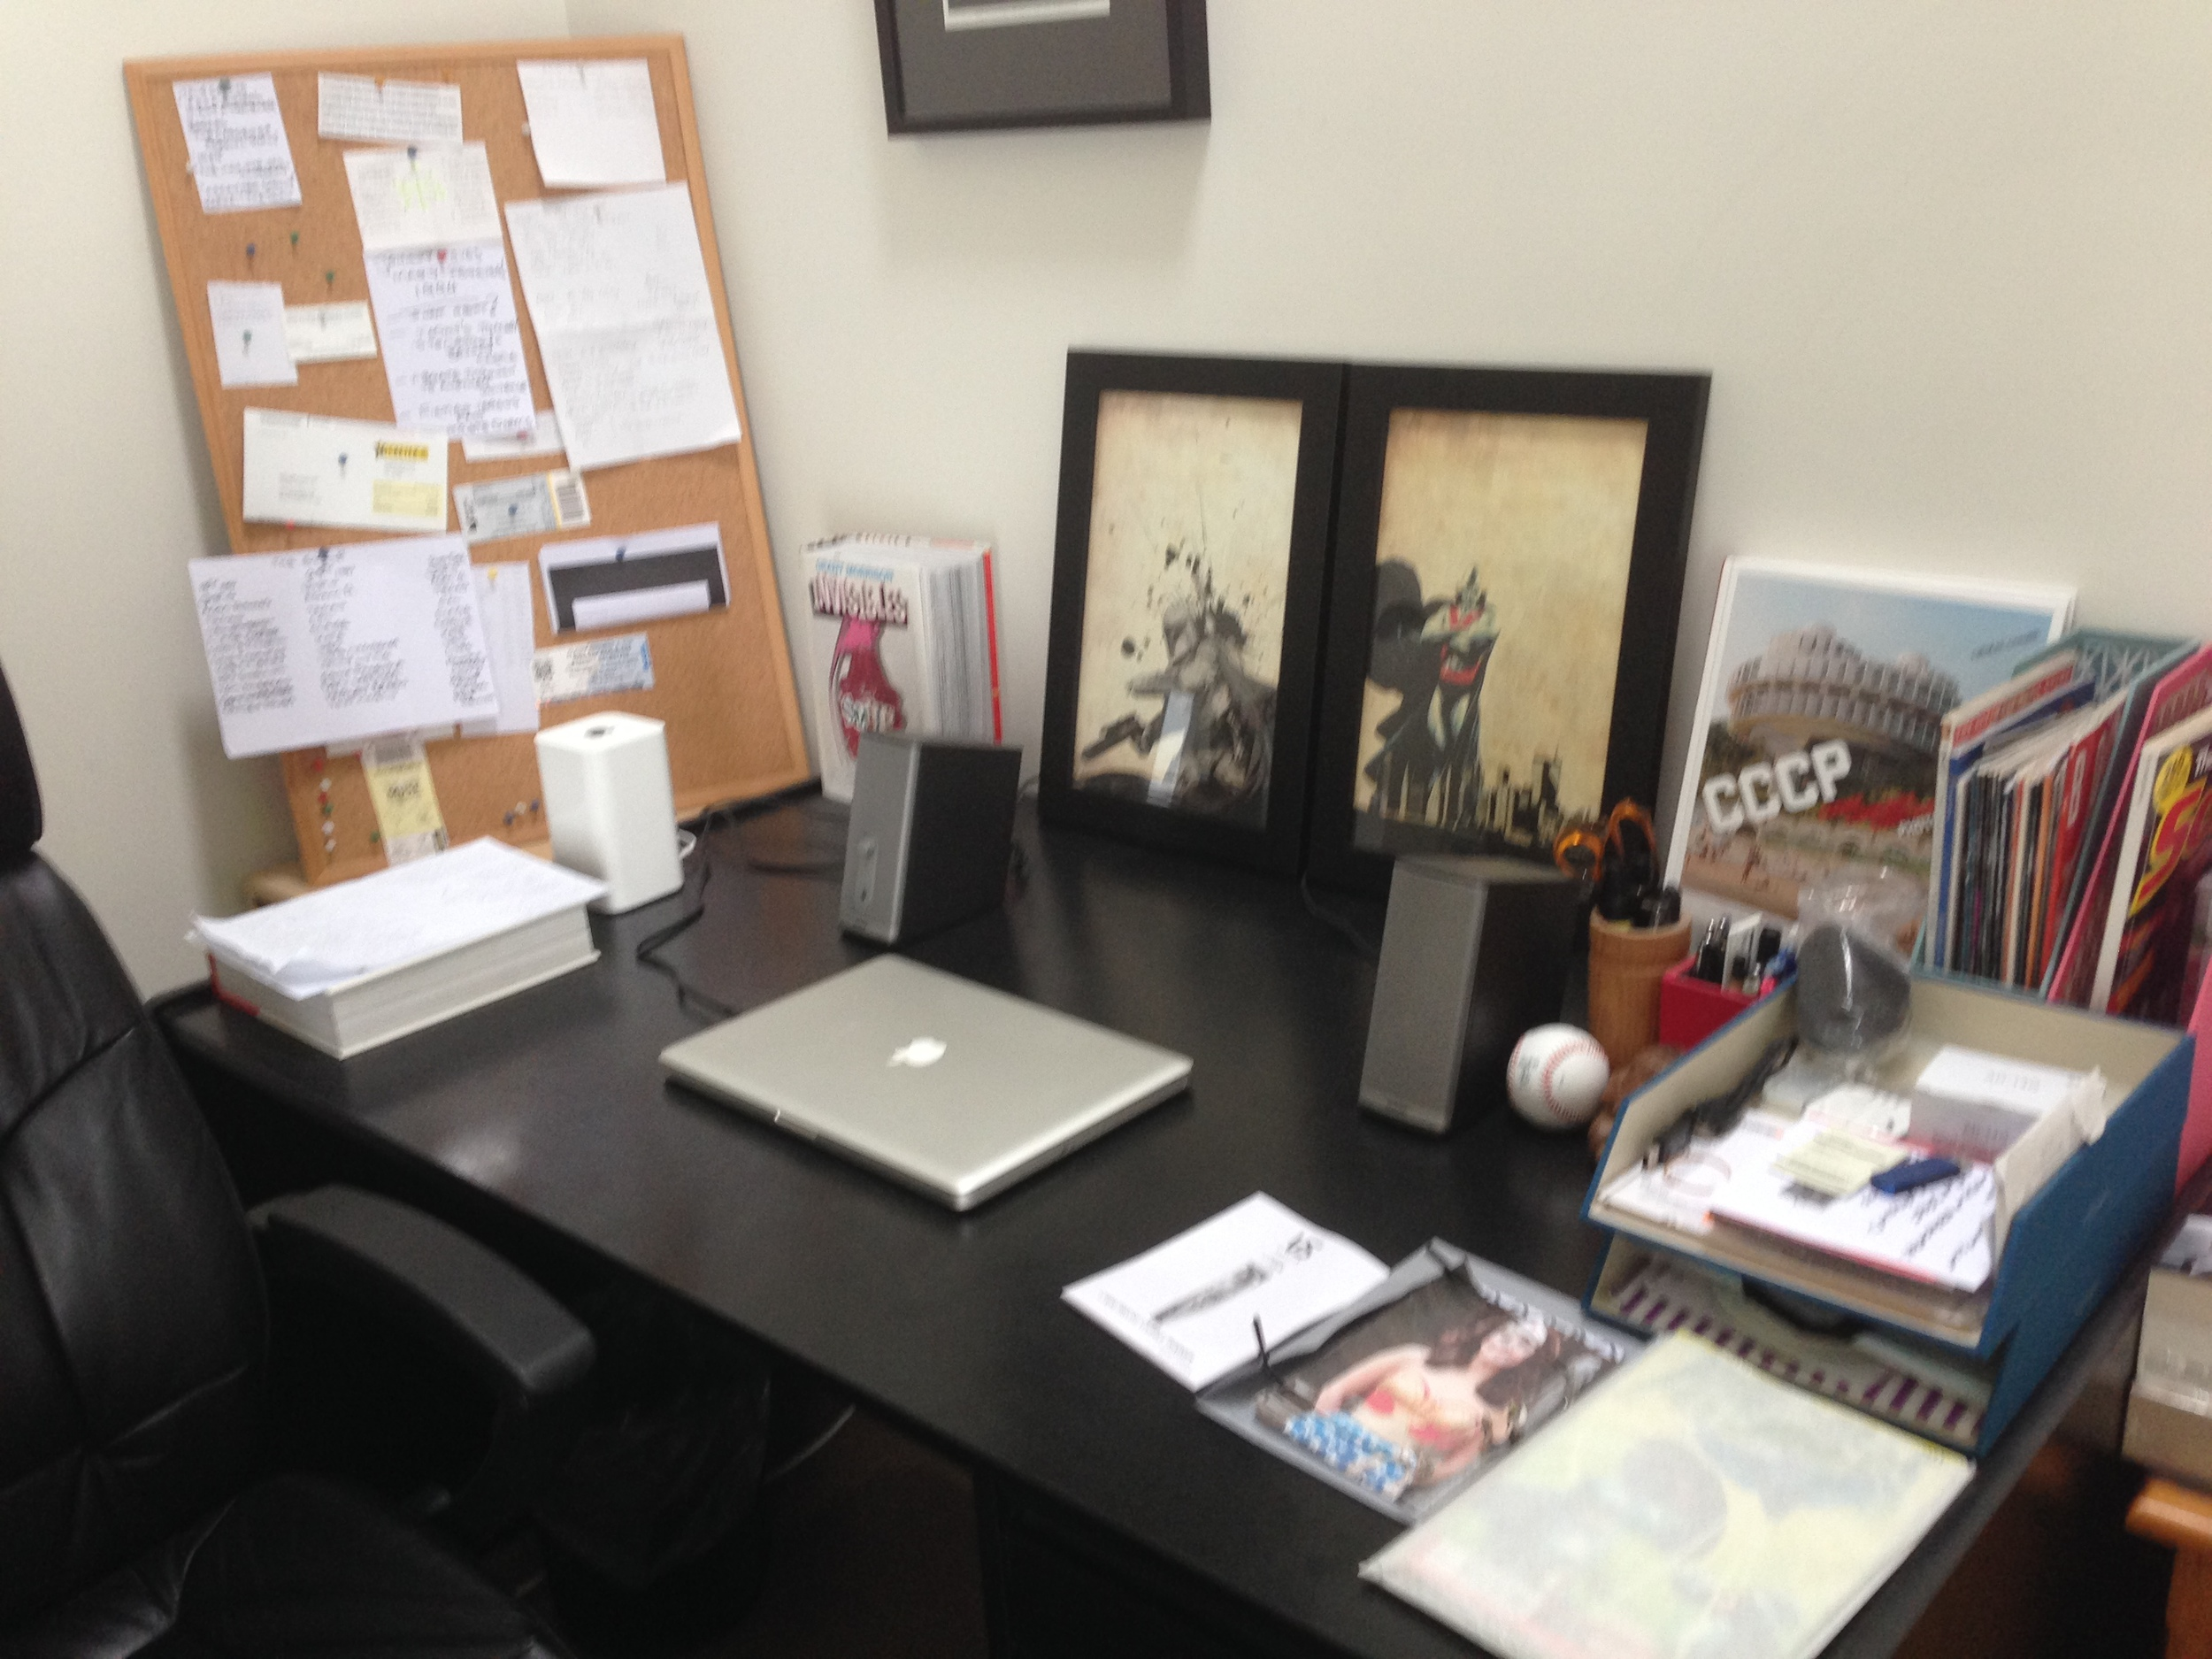 A nice clean desk helps relaxes my inner Virgo.